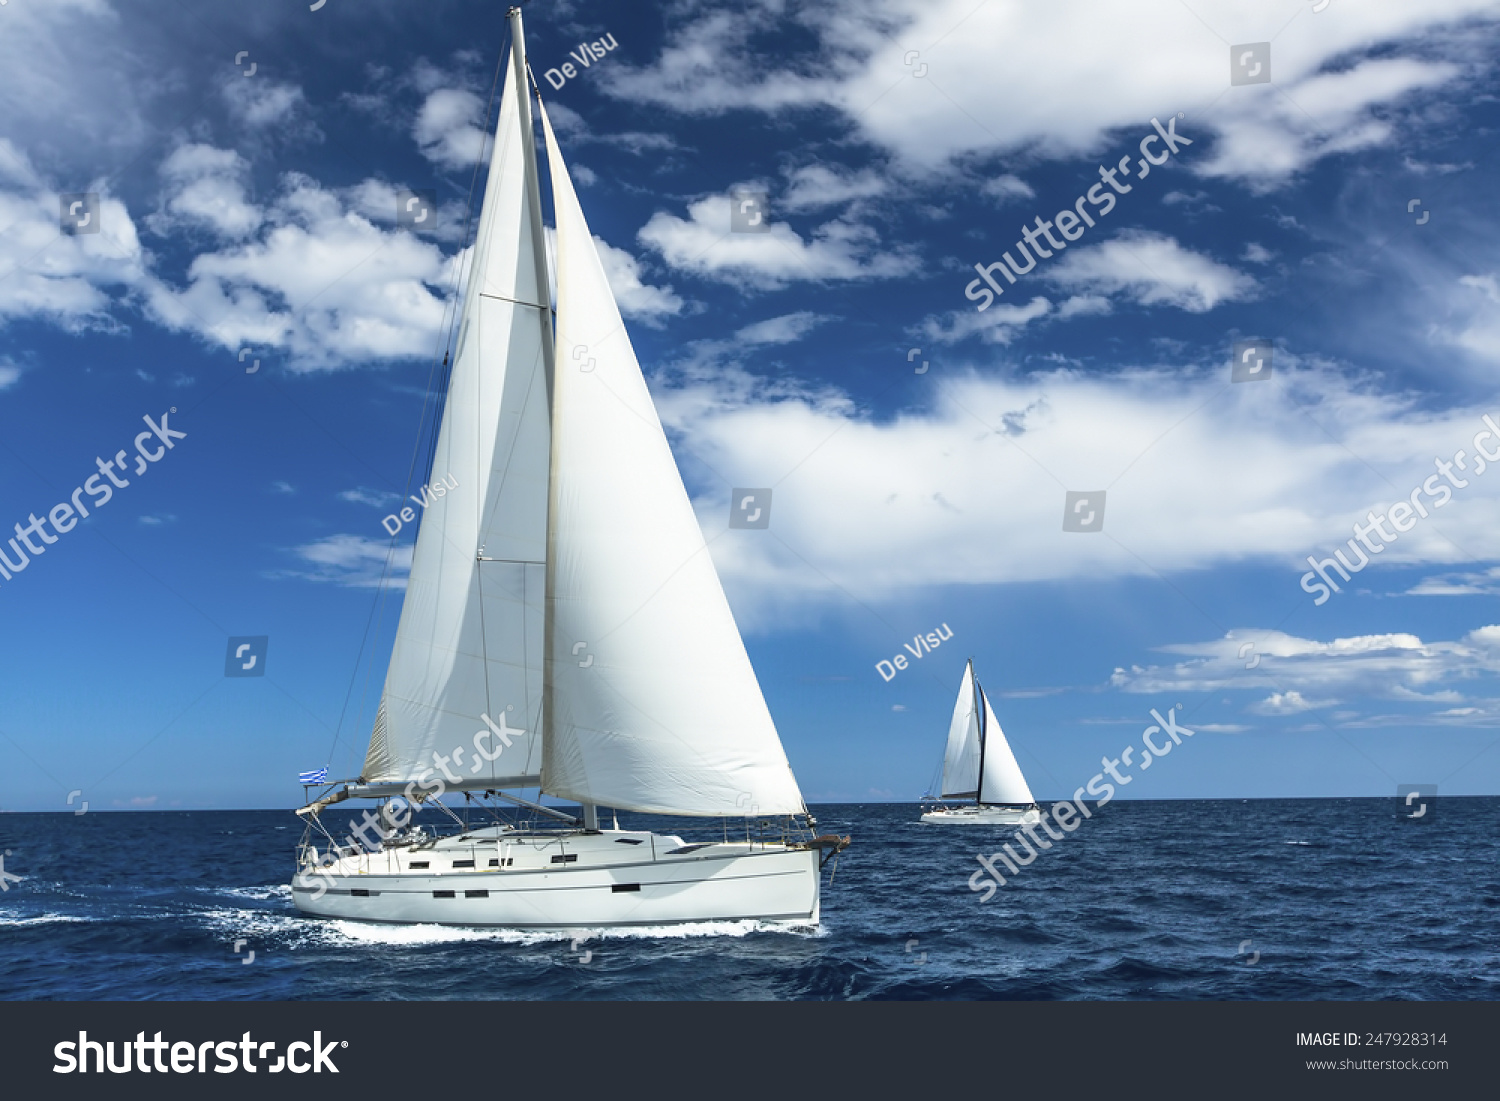 Sailboats participate in sailing regatta Sailing Yachting Luxury Yachts